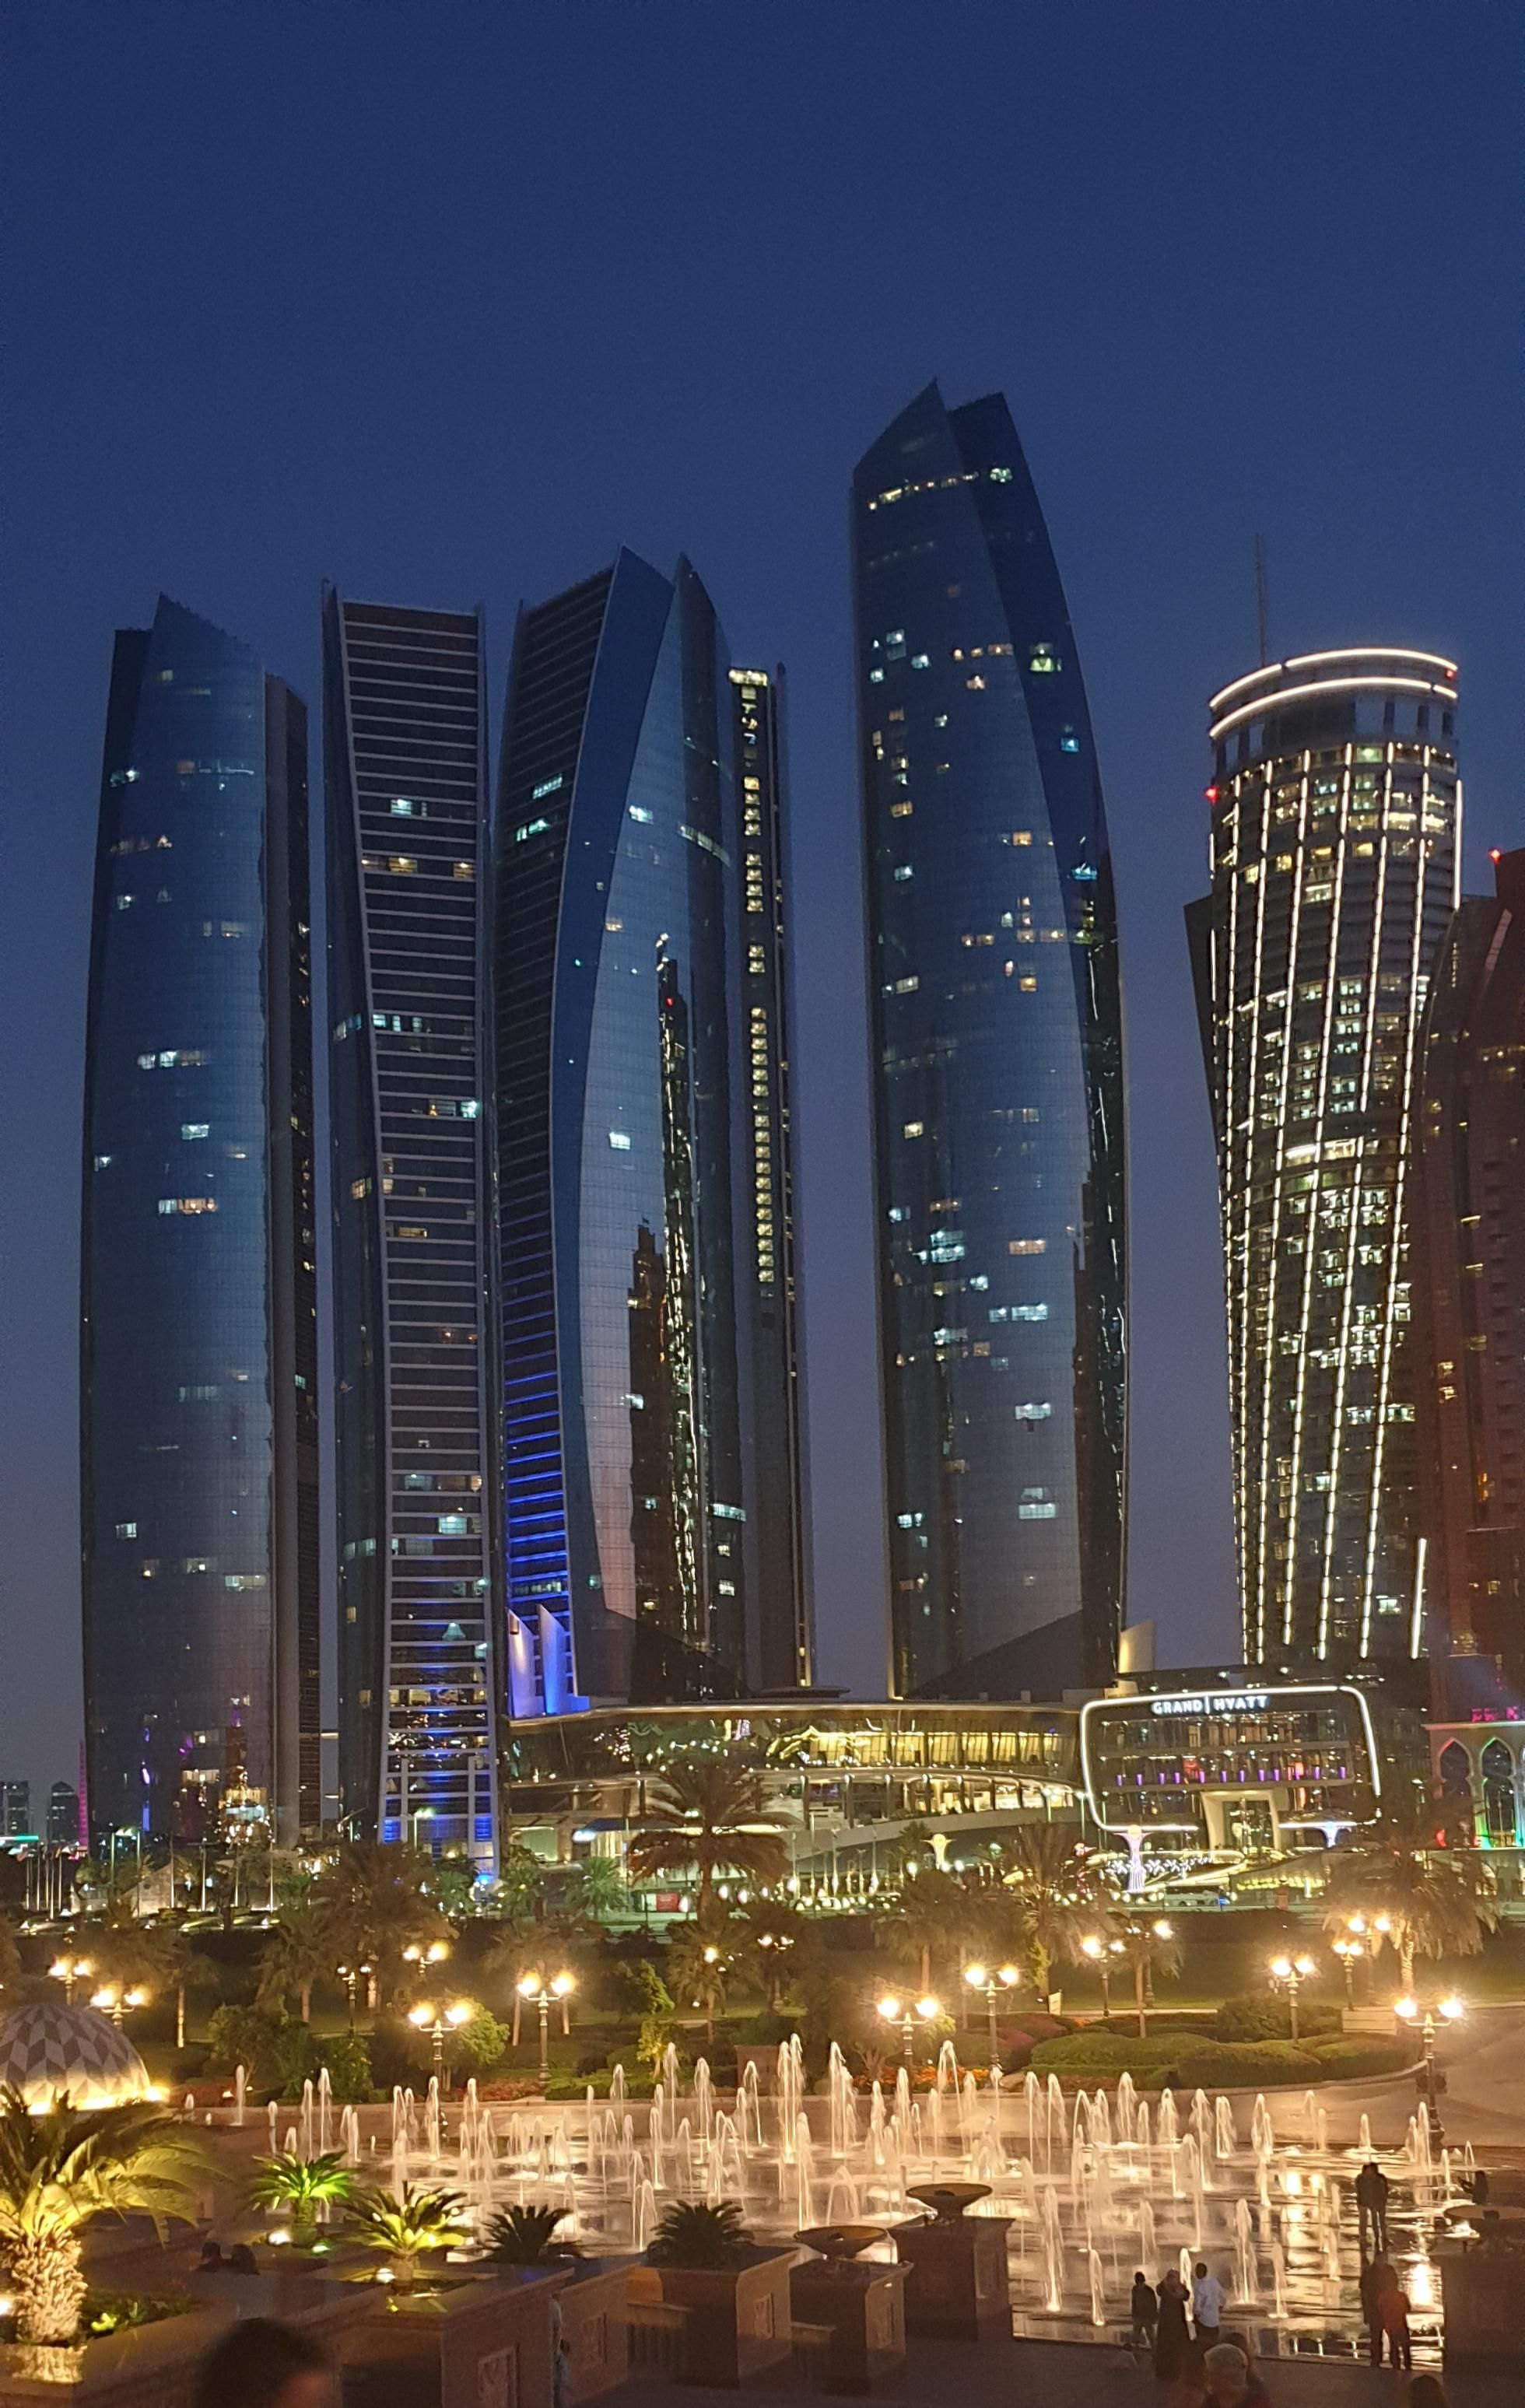 Abu dhabi uae city cities buildings photography with